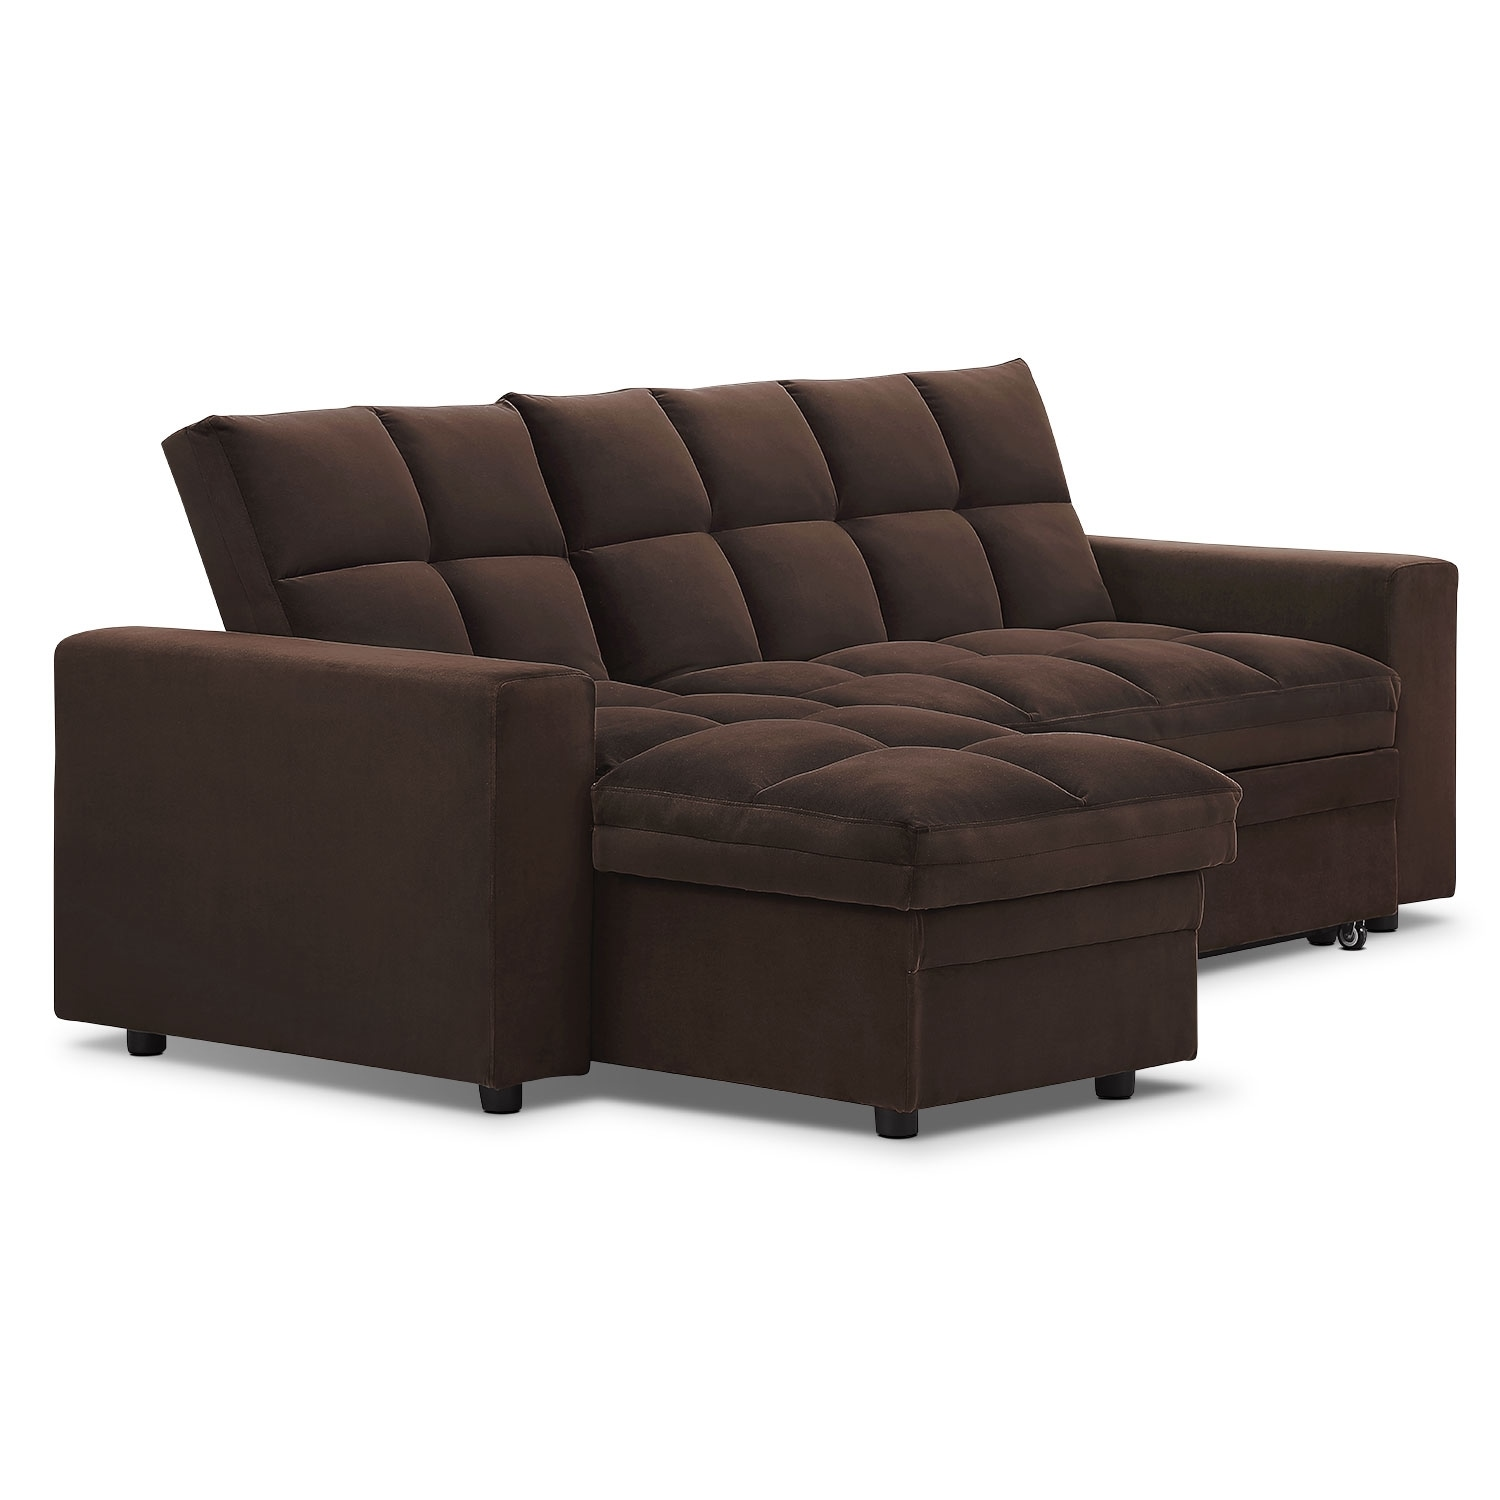 Elegant Metro Chaise Sofa Bed With Storage   Brown